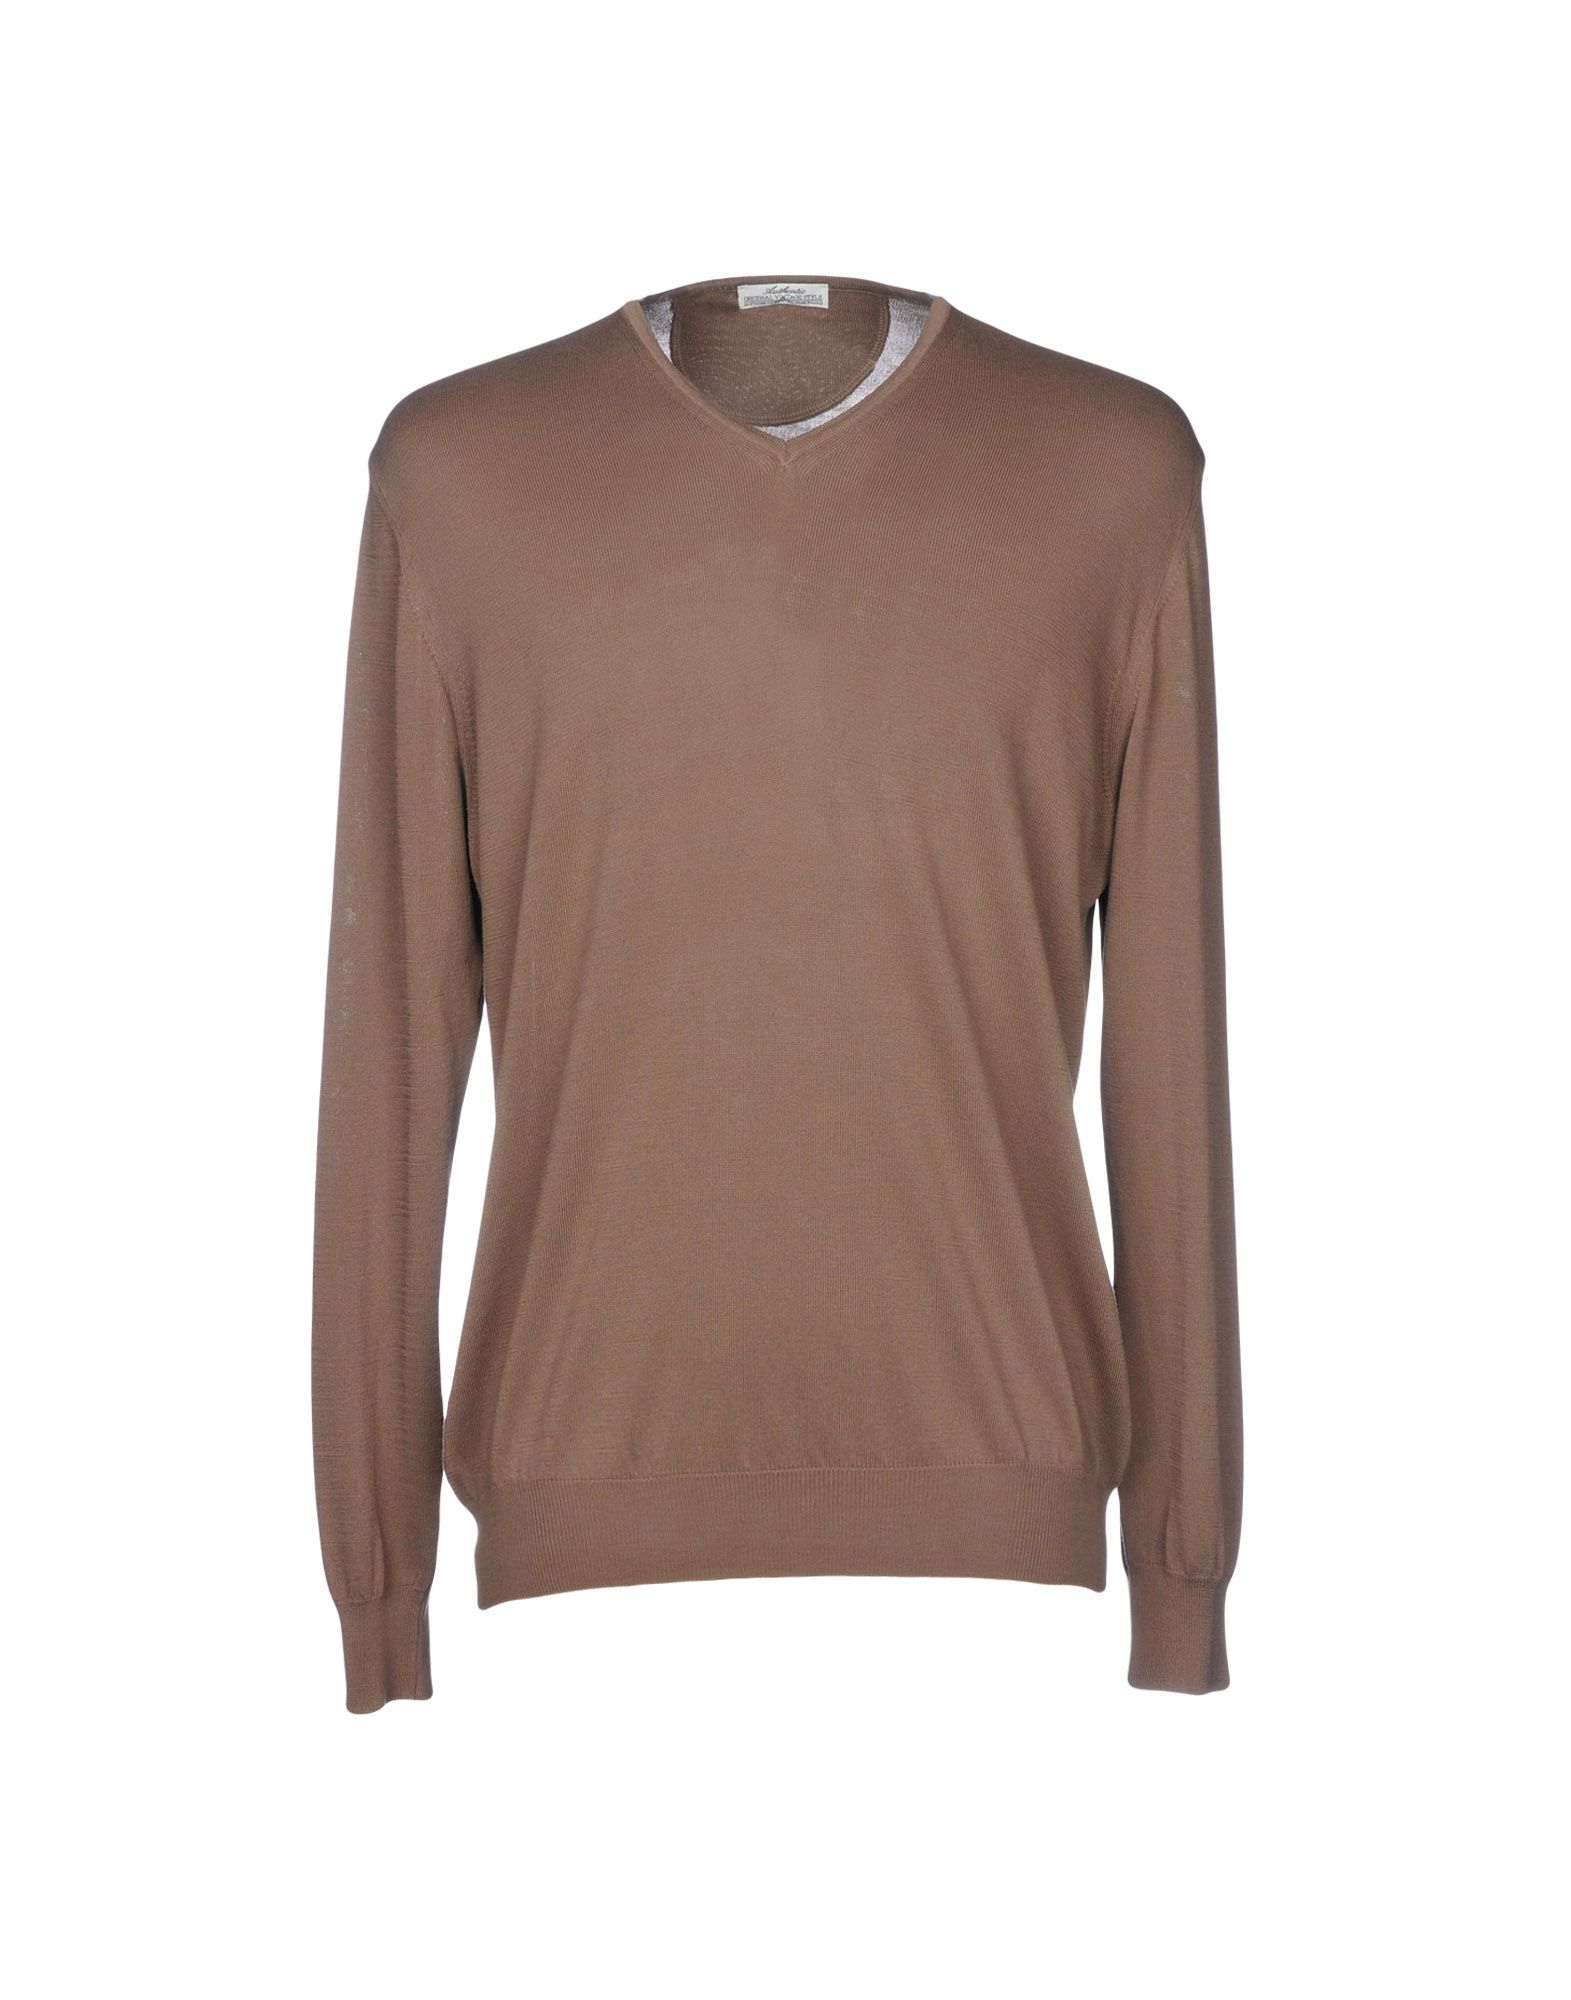 AUTHENTIC ORIGINAL VINTAGE STYLE Sweater in Light Brown